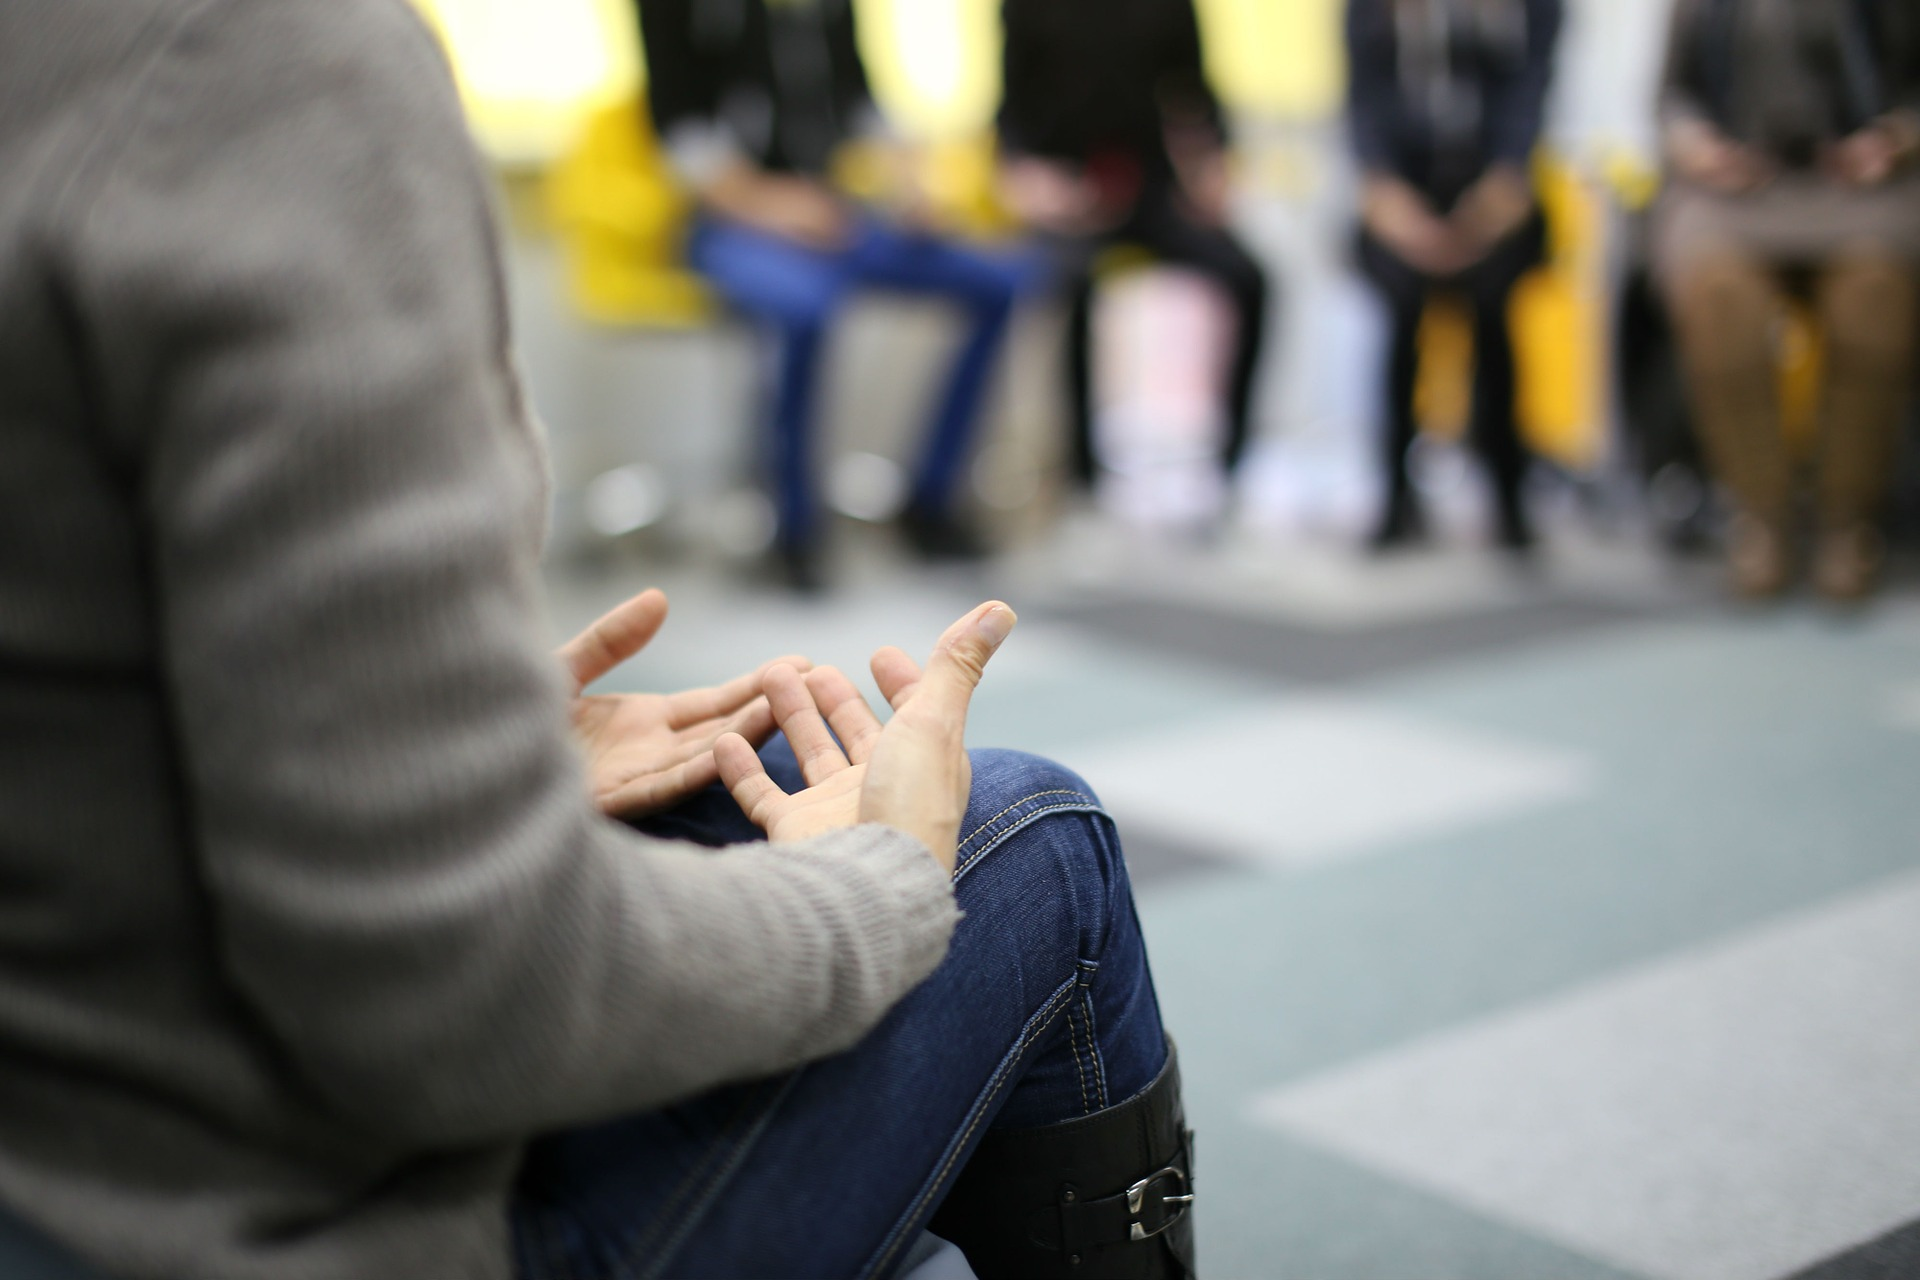 Group Therapy, relaxing hands